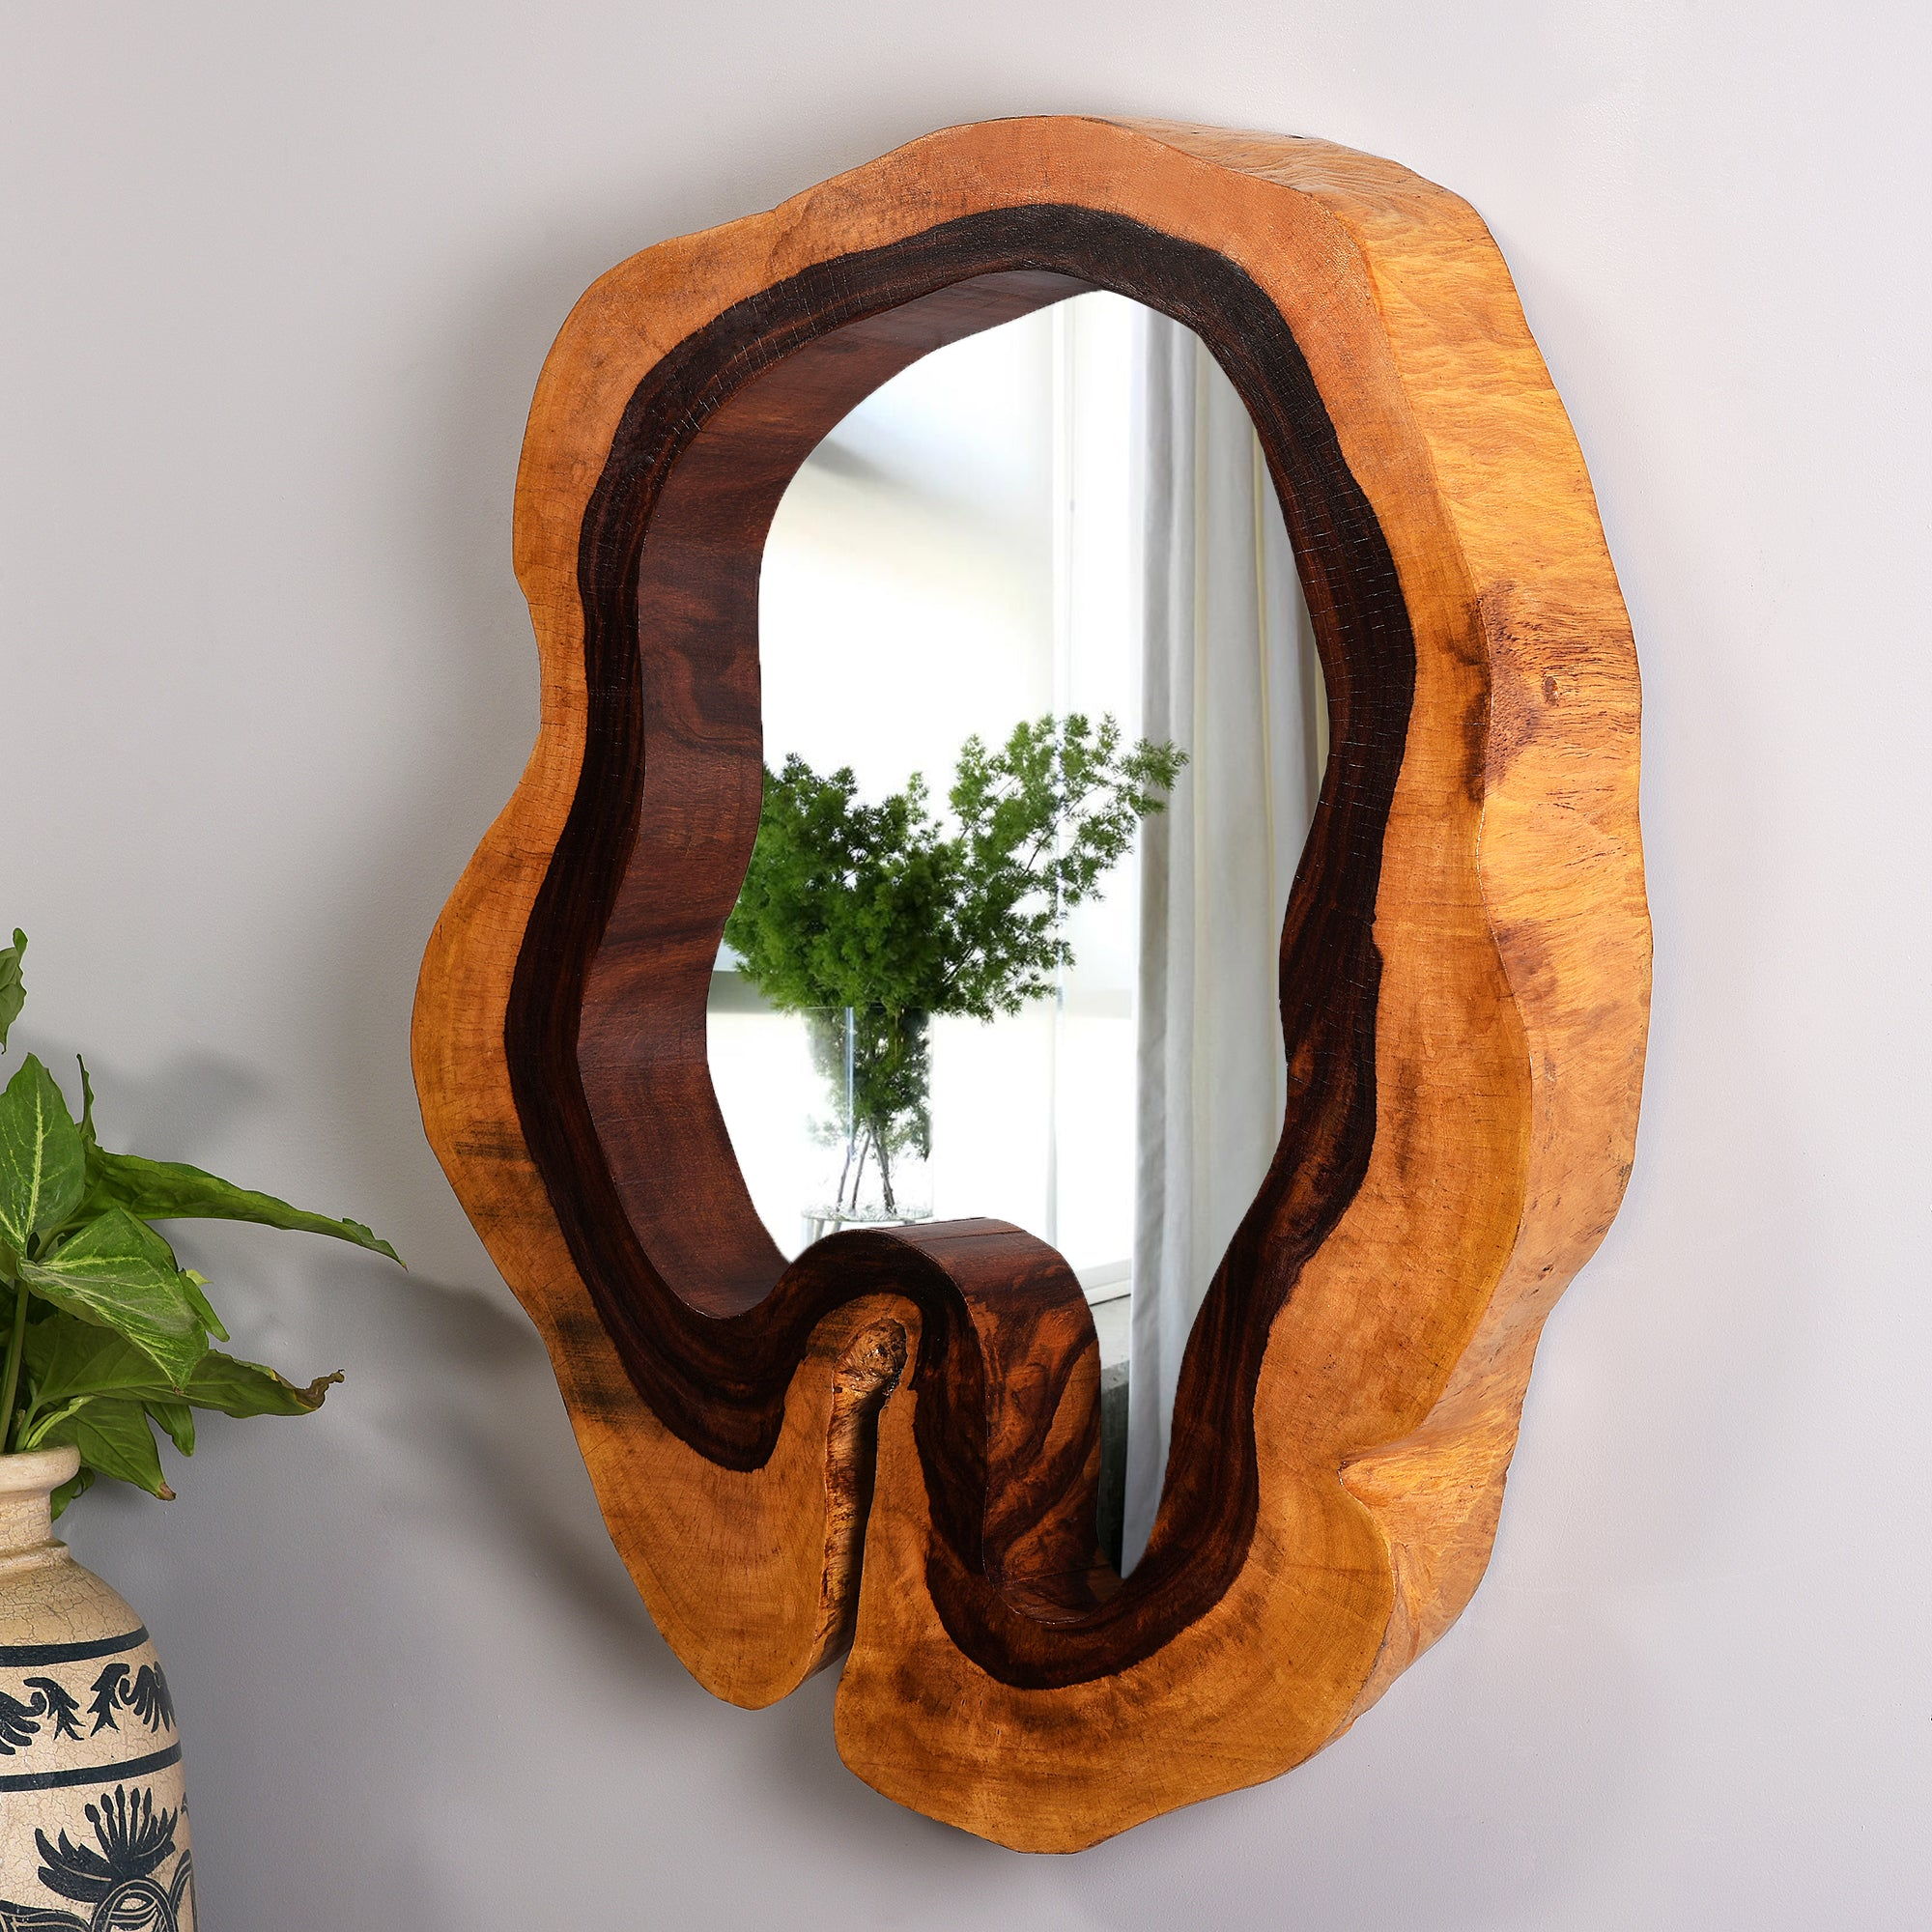 Tree Hollow Mirror